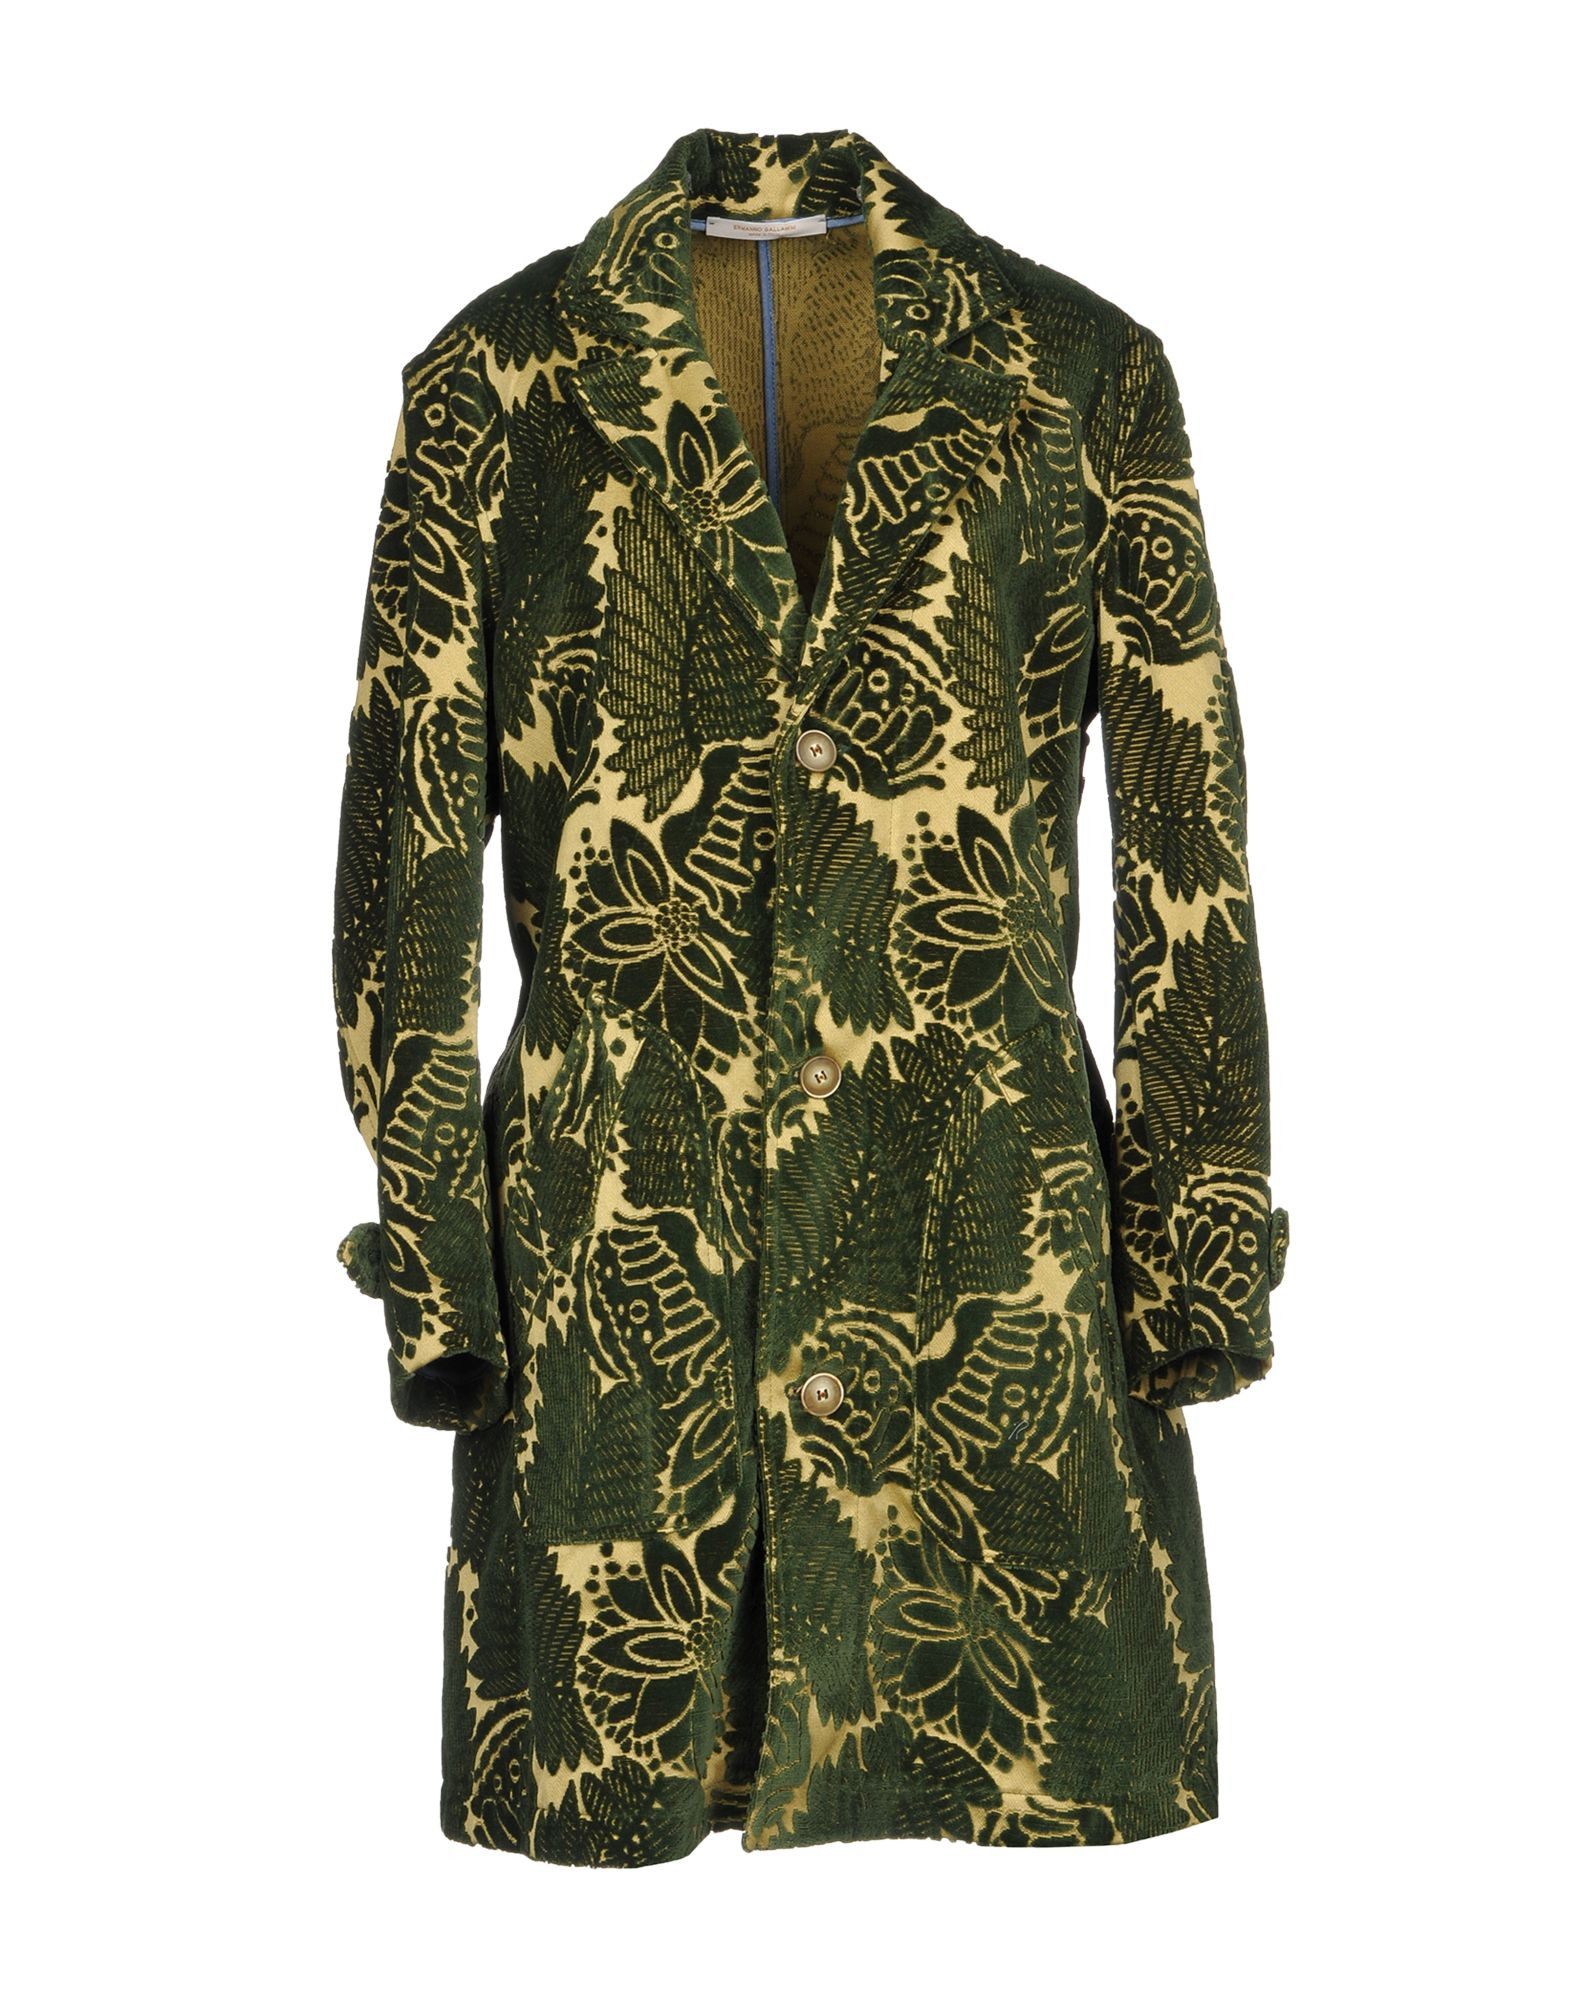 ERMANNO GALLAMINI Full-Length Jacket in Green